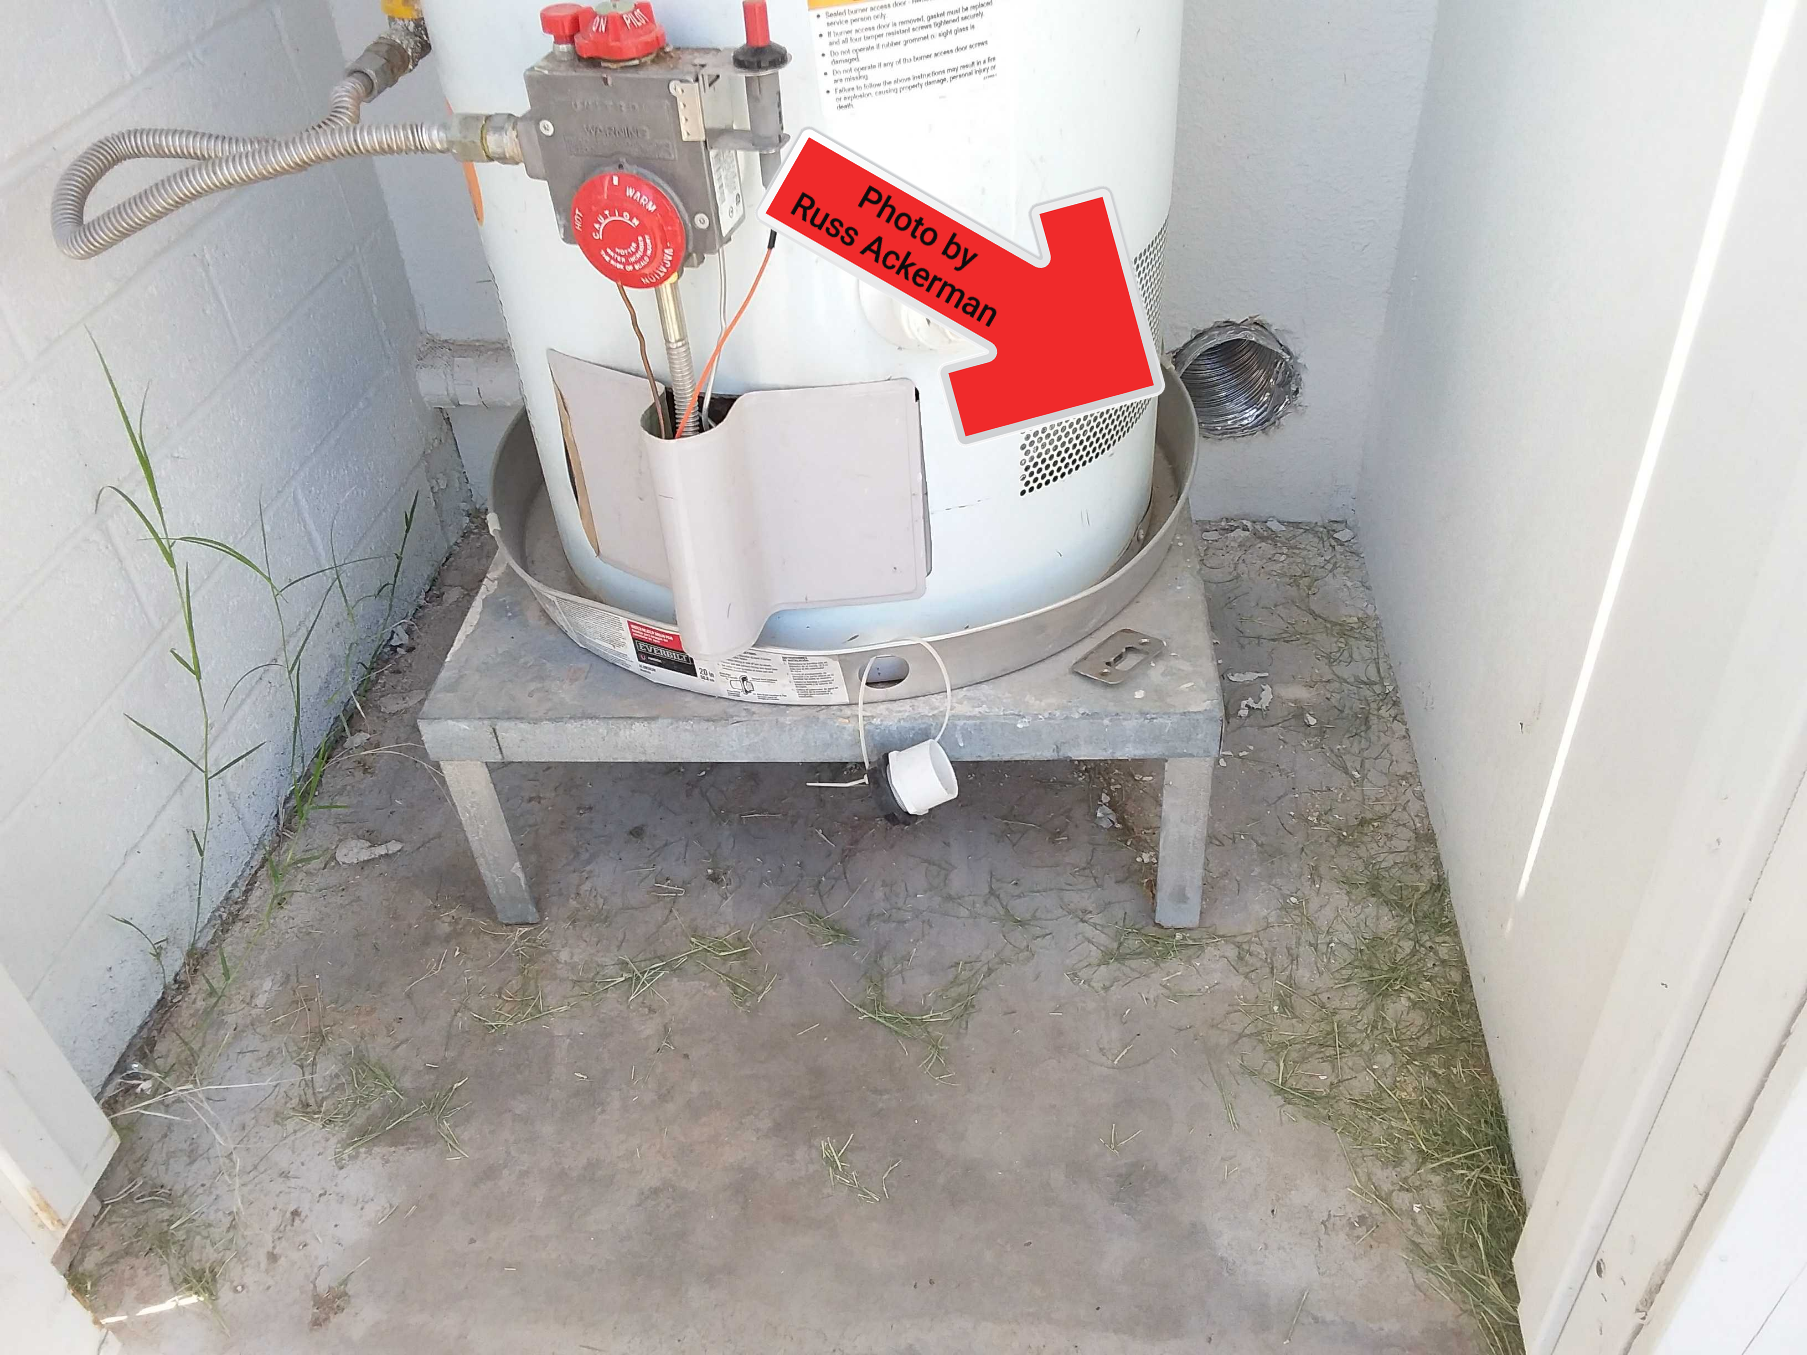 This laundry room dryer exhaust was improperly venting inside an exterior water heater room. That's a gallon of water vapor per load.